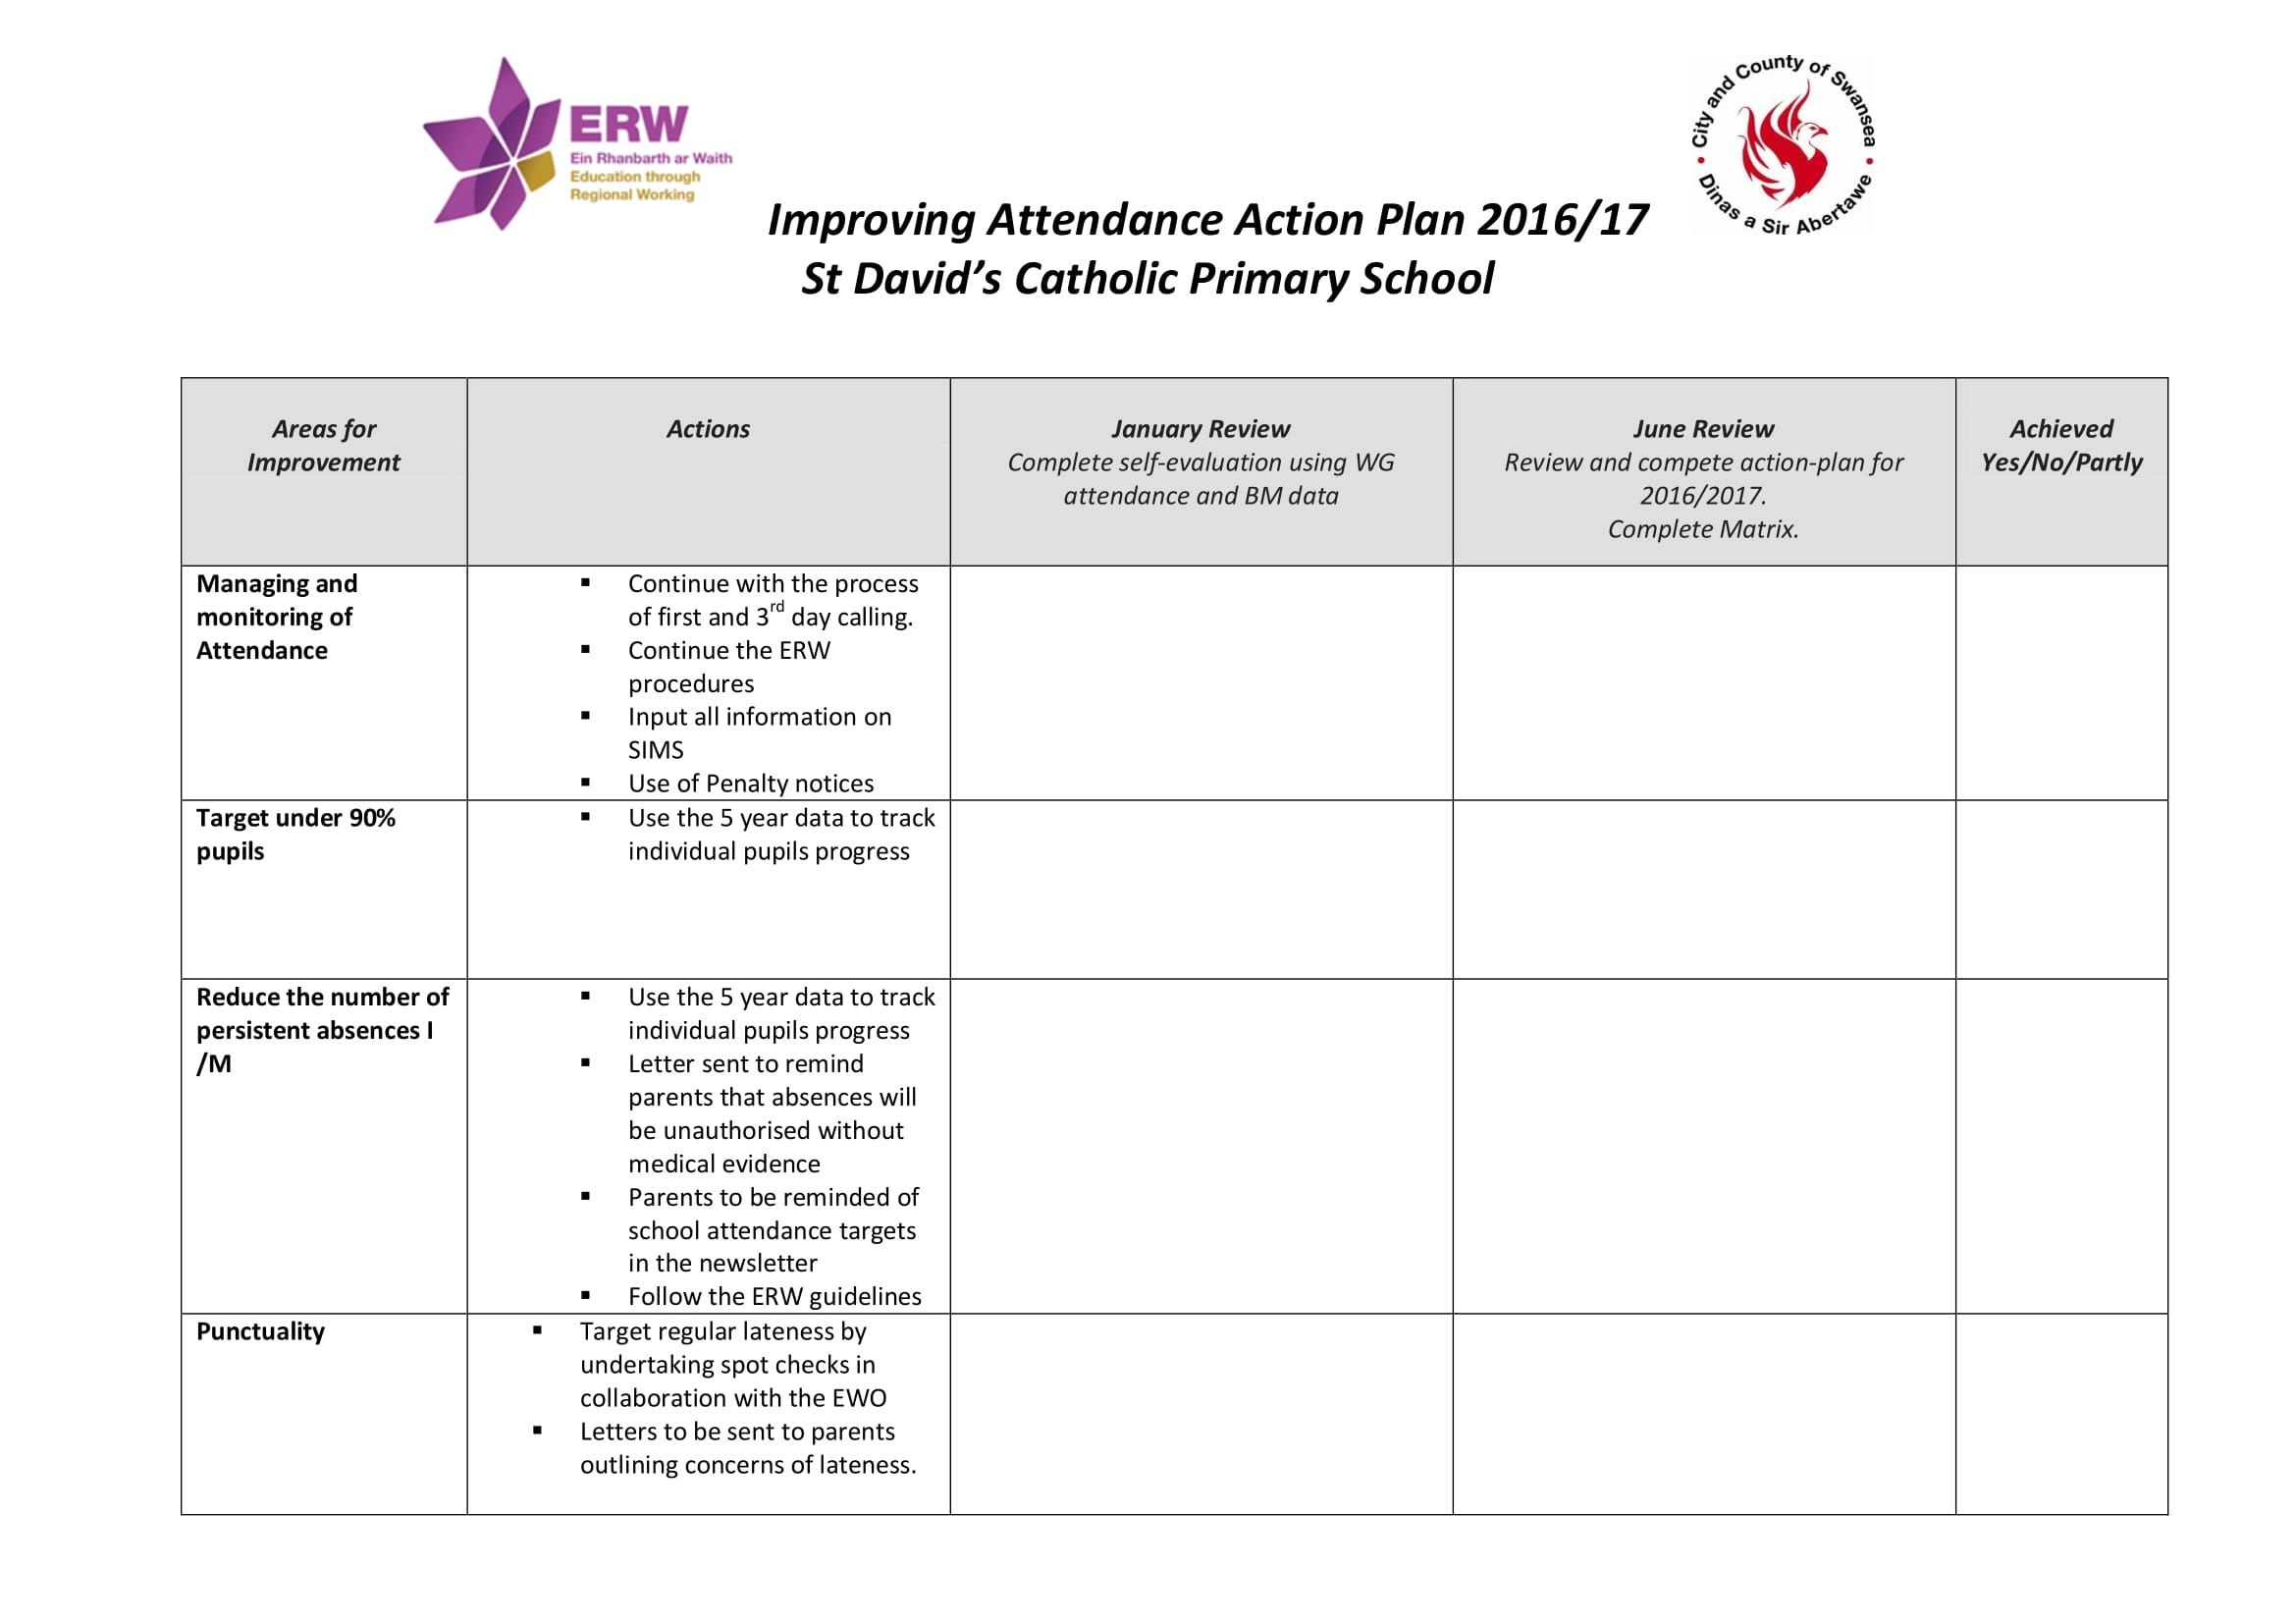 008 Fascinating School Improvement Planning Template Picture  Templates Plan Sample Deped 2016 Example South AfricaFull